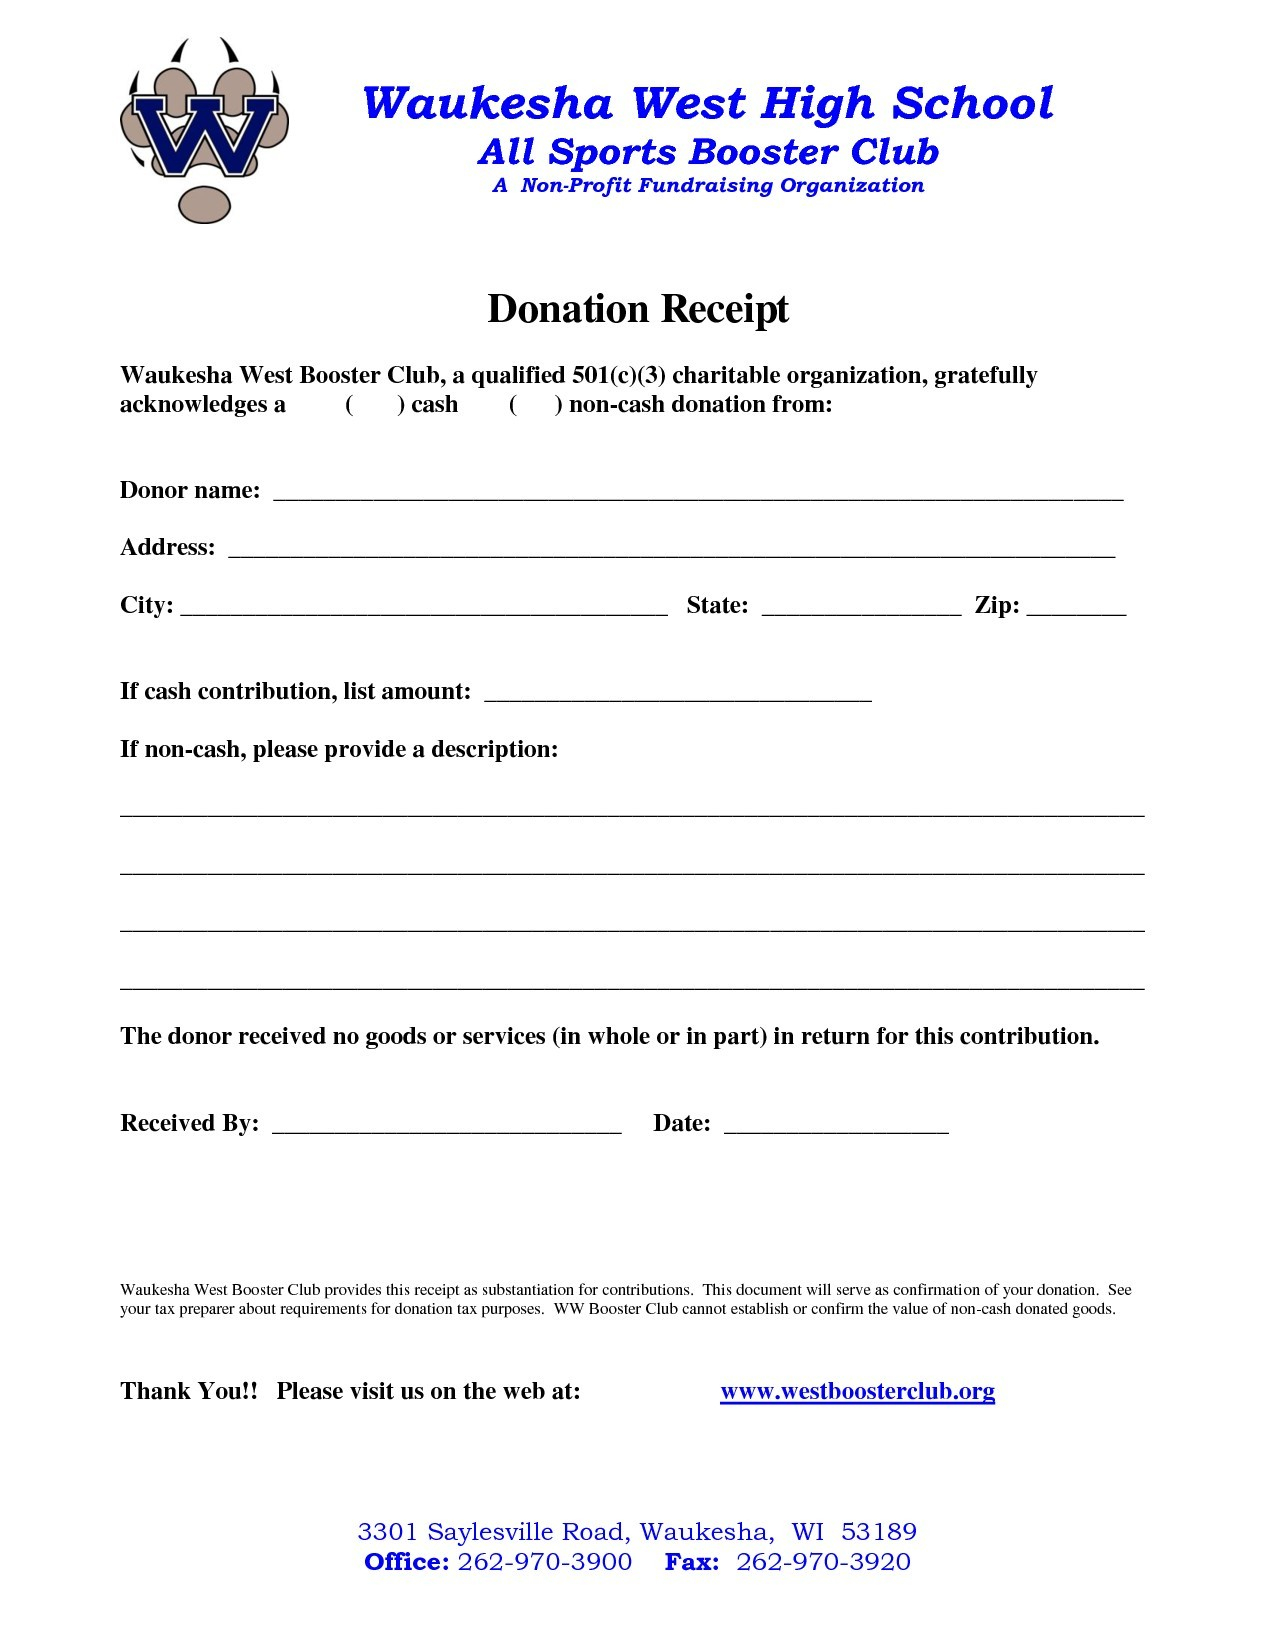 non profit donation receipt letter template Collection-Awesome Non Profit Donation Receipt Template 9-h